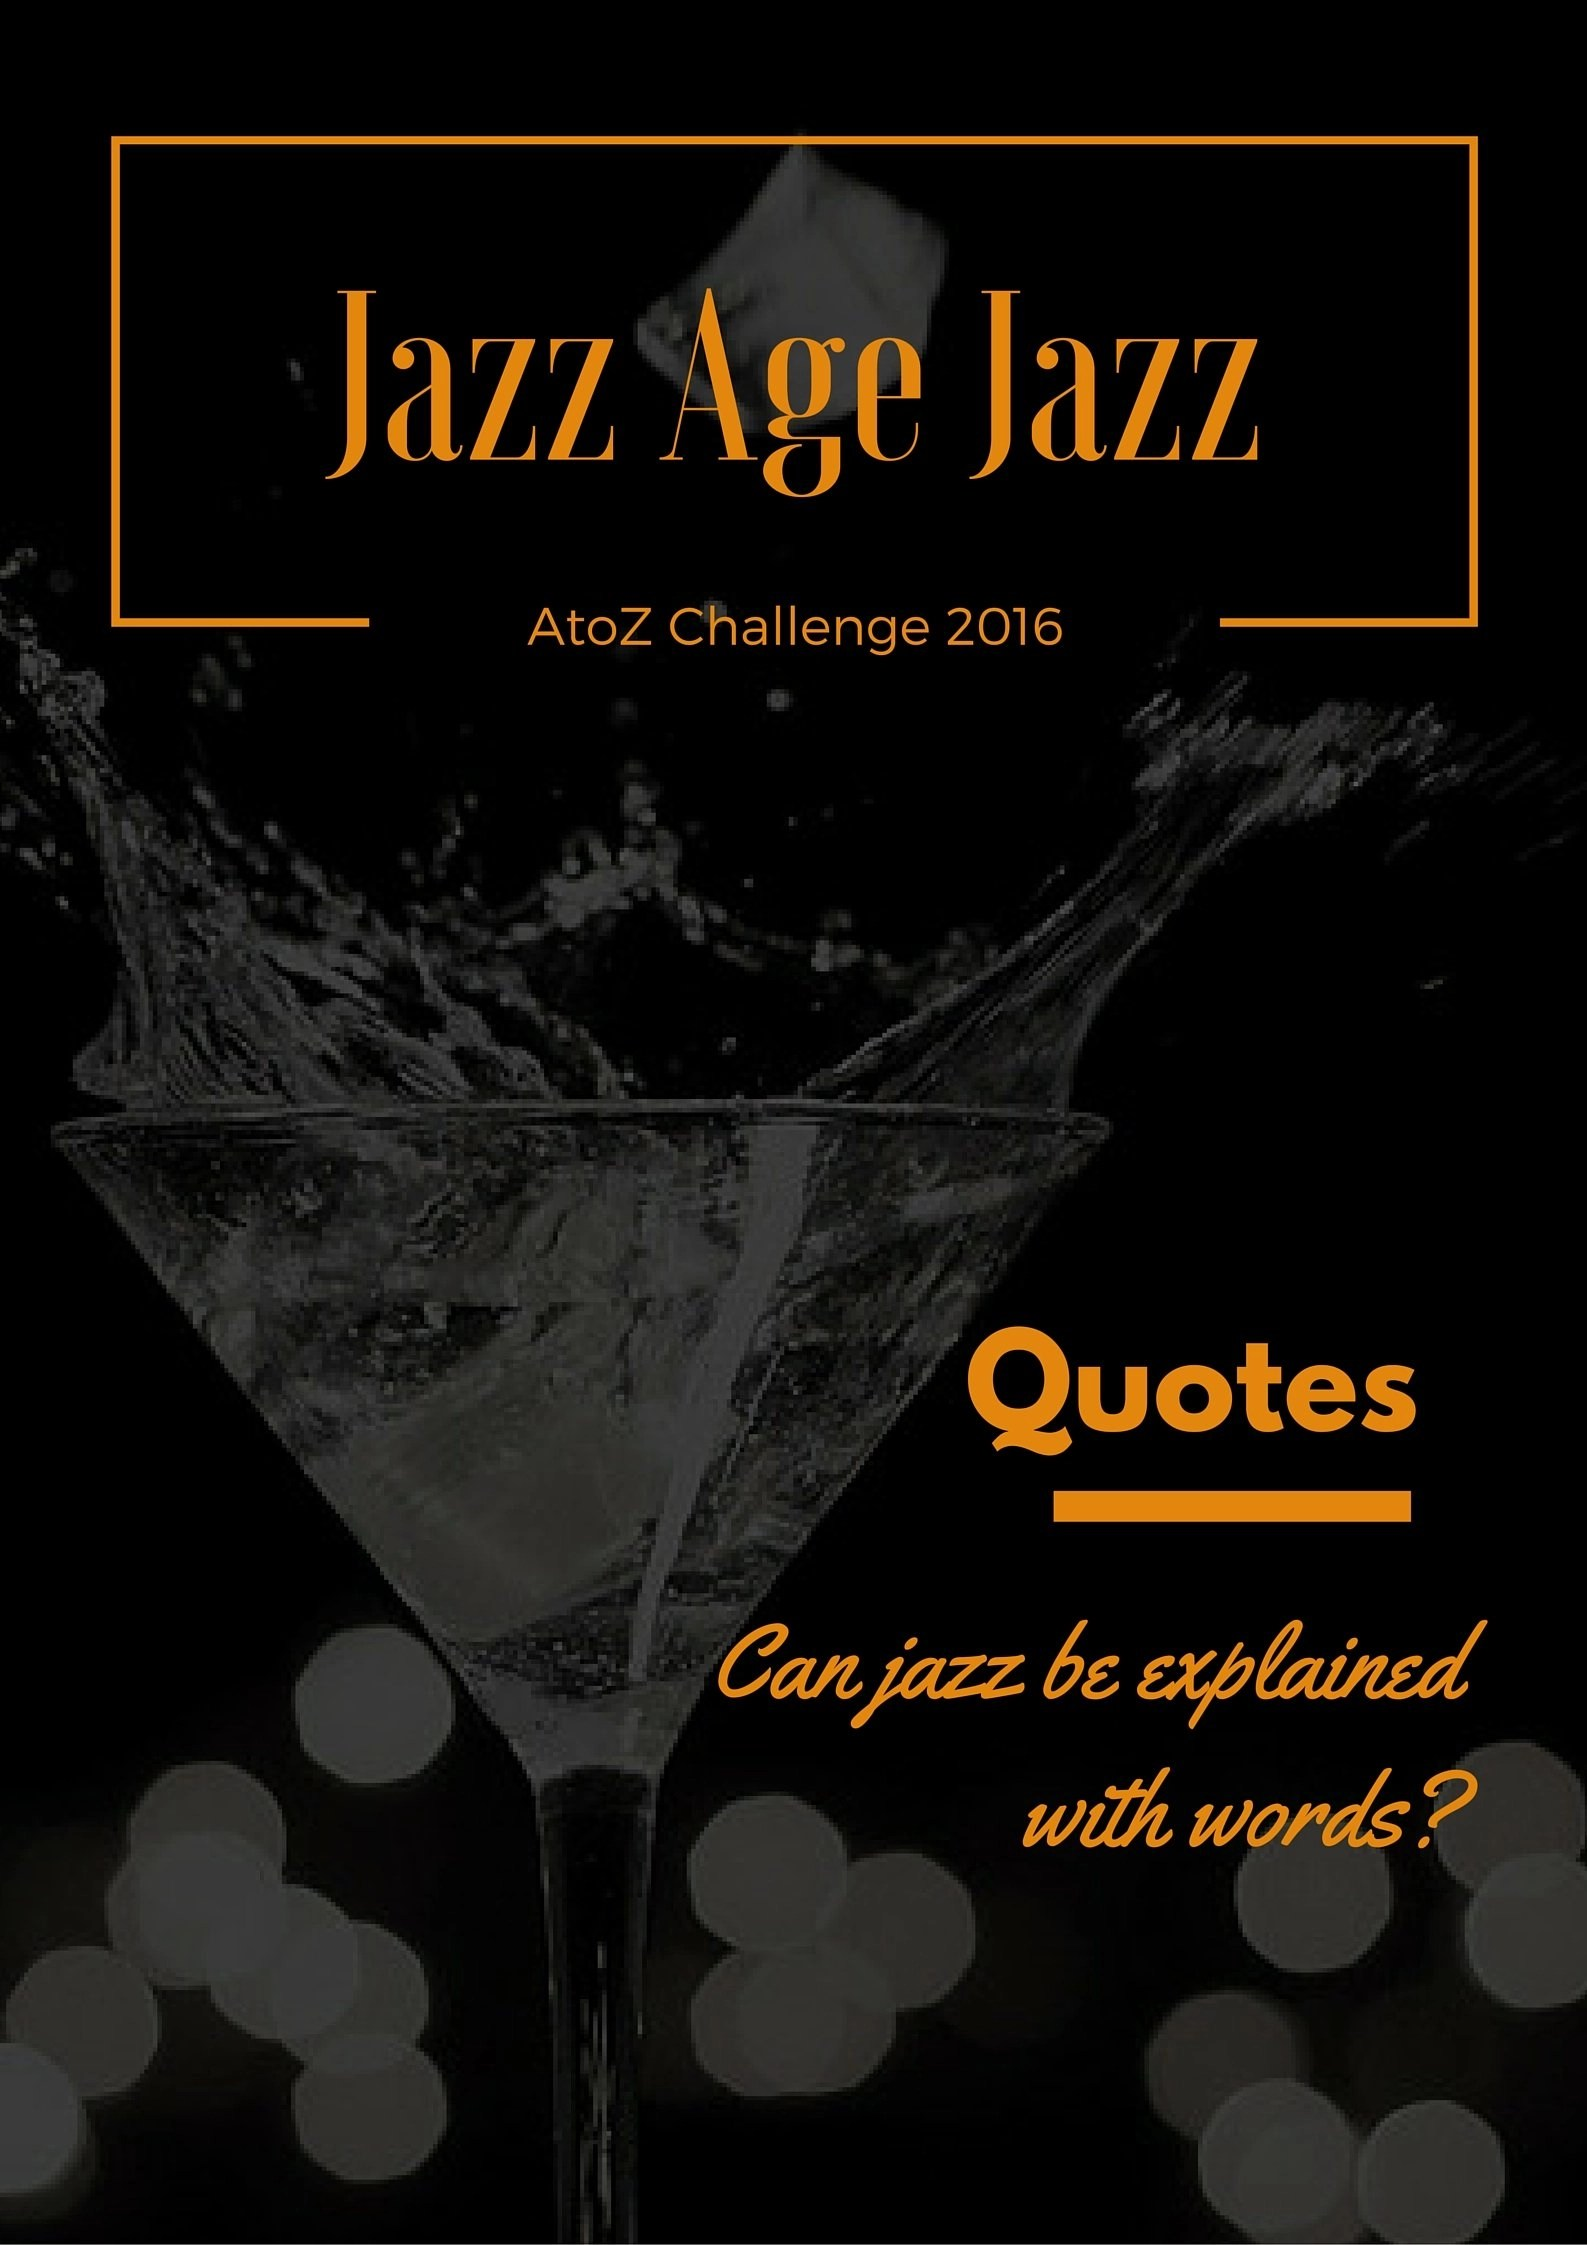 Jazz Age Jazz - Quotes: can jazz be explained with words?